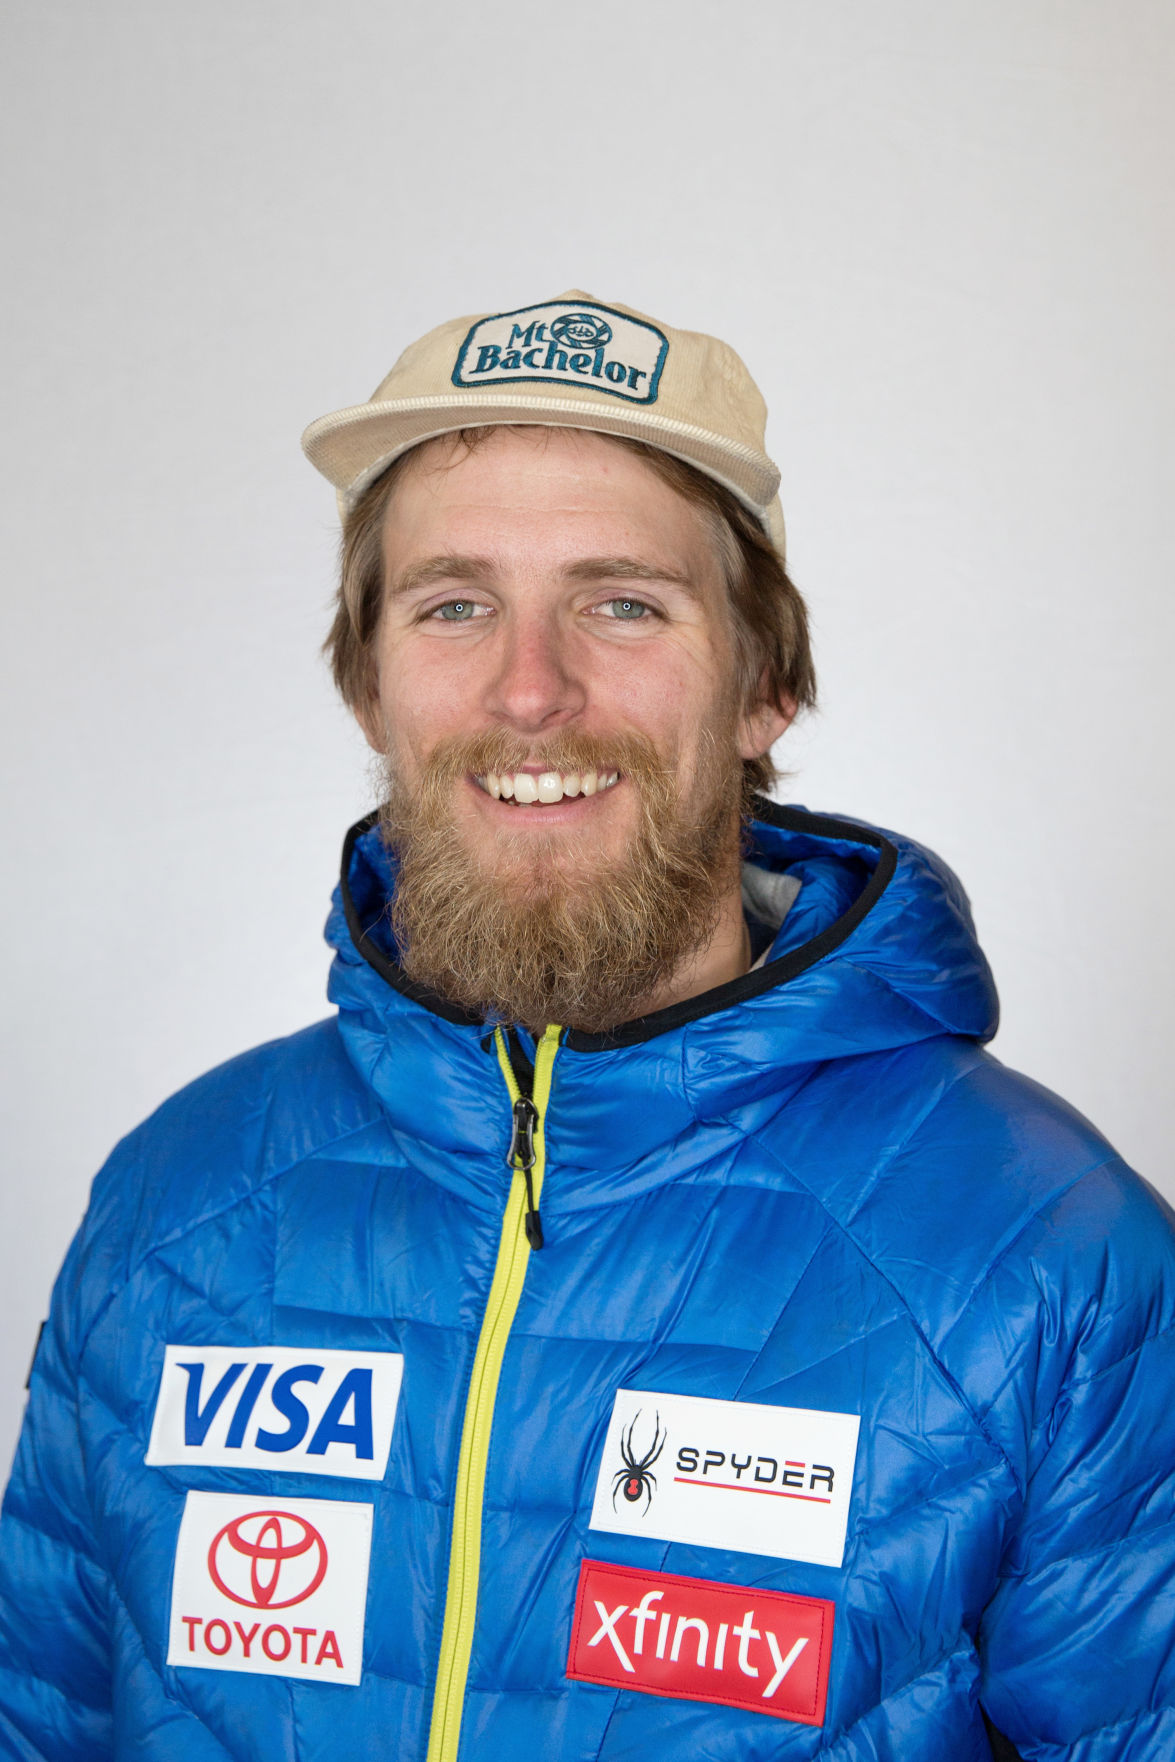 Bend Skier Hits His Stride On The World Cup Sports Bendbulletin Com